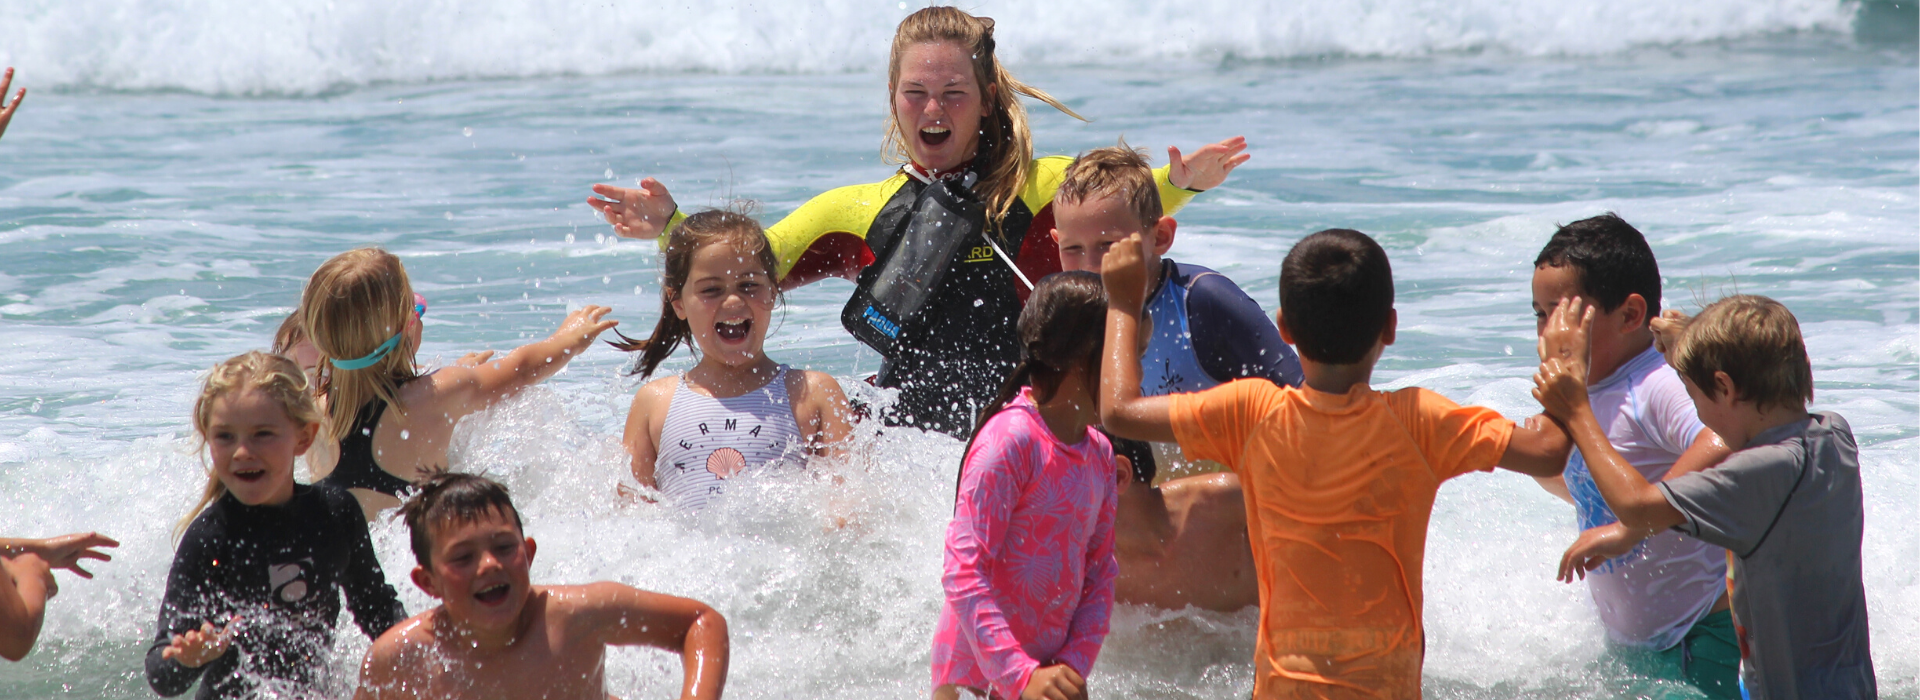 Surf/Beach Education Banner 1